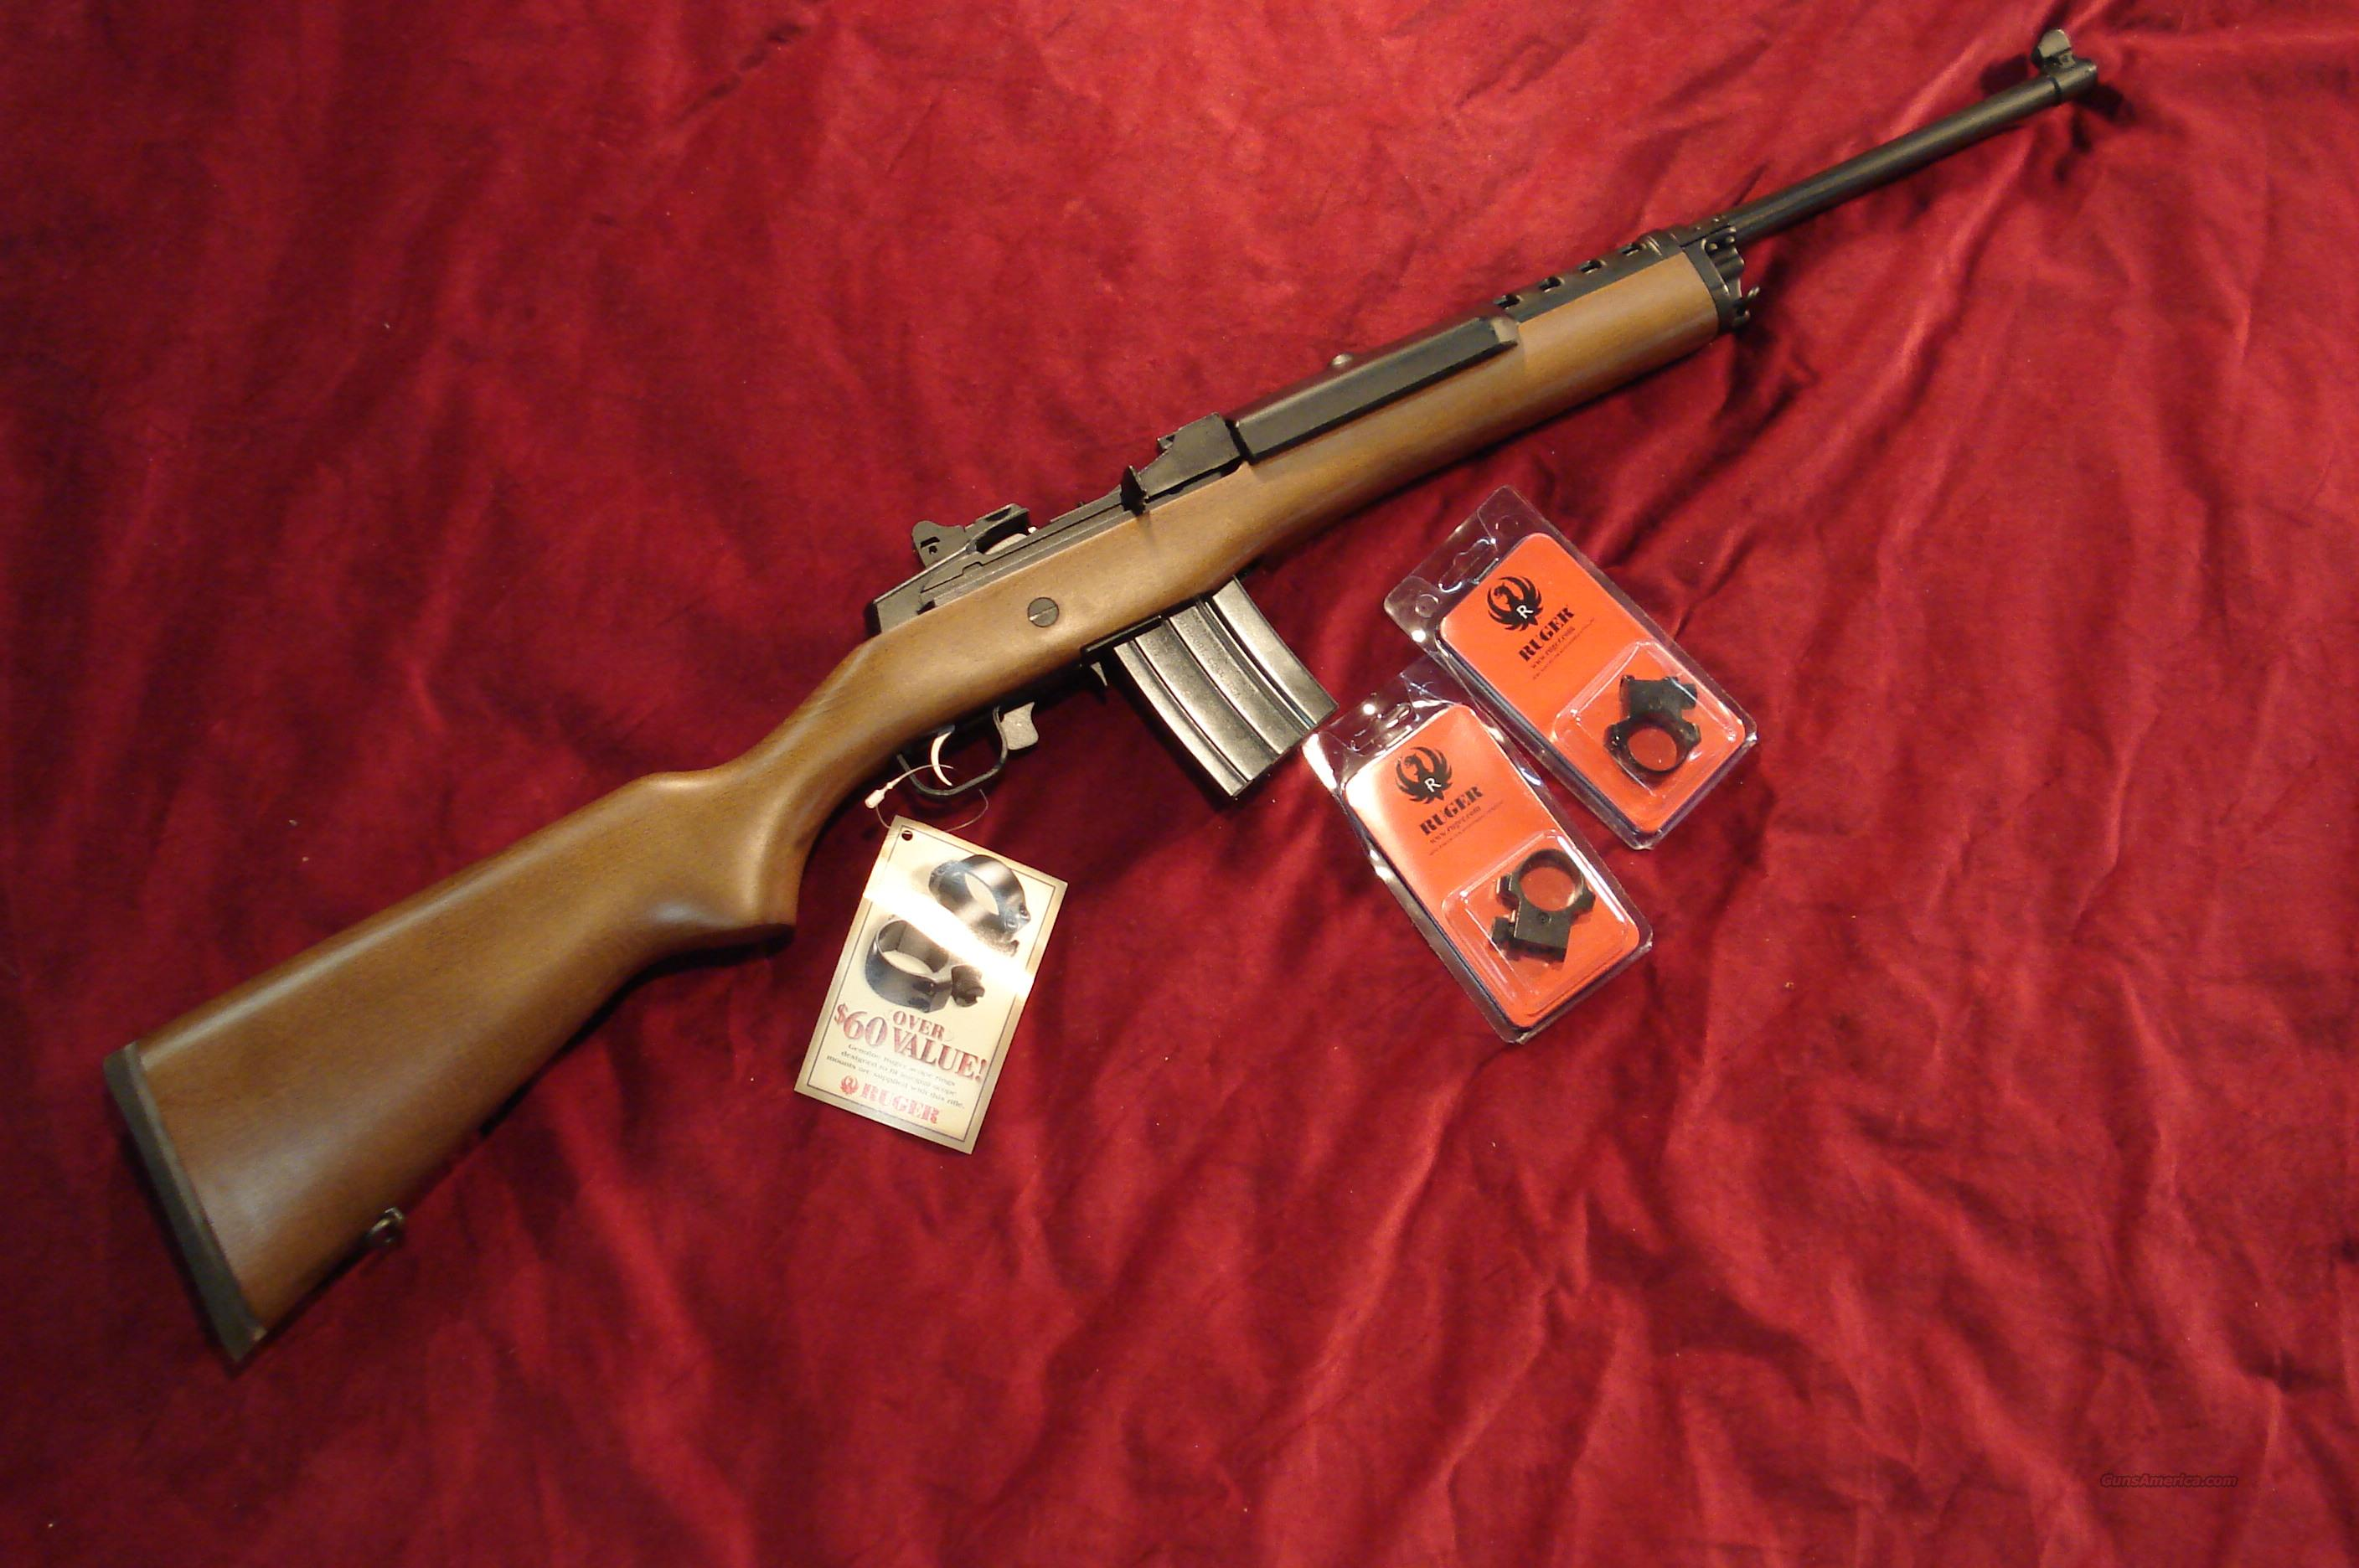 RUGER MINI 14 BLUE RANCH 20 ROUND NEW   Guns > Rifles > Ruger Rifles > Mini-14 Type